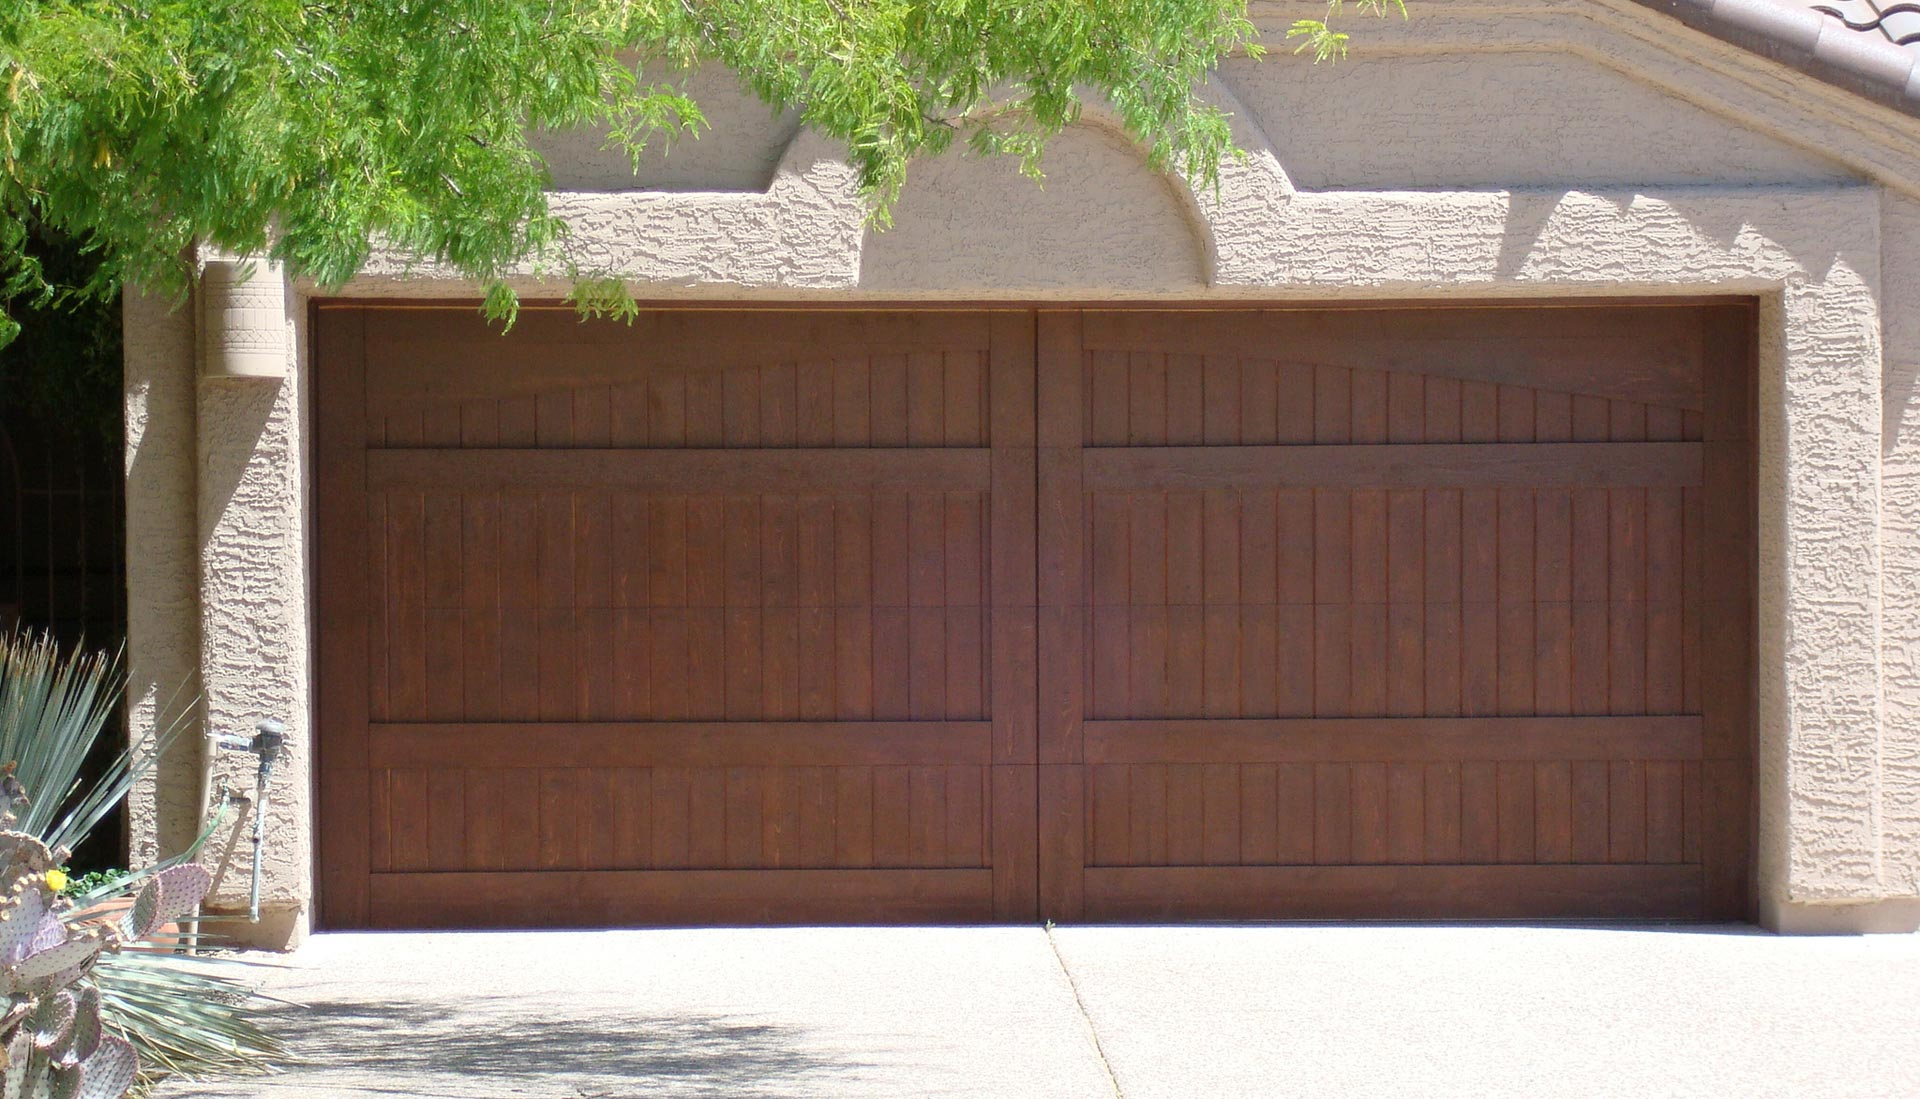 1099 #46681F Some Of Our Complete Projects wallpaper Complete Garage Doors 36251920